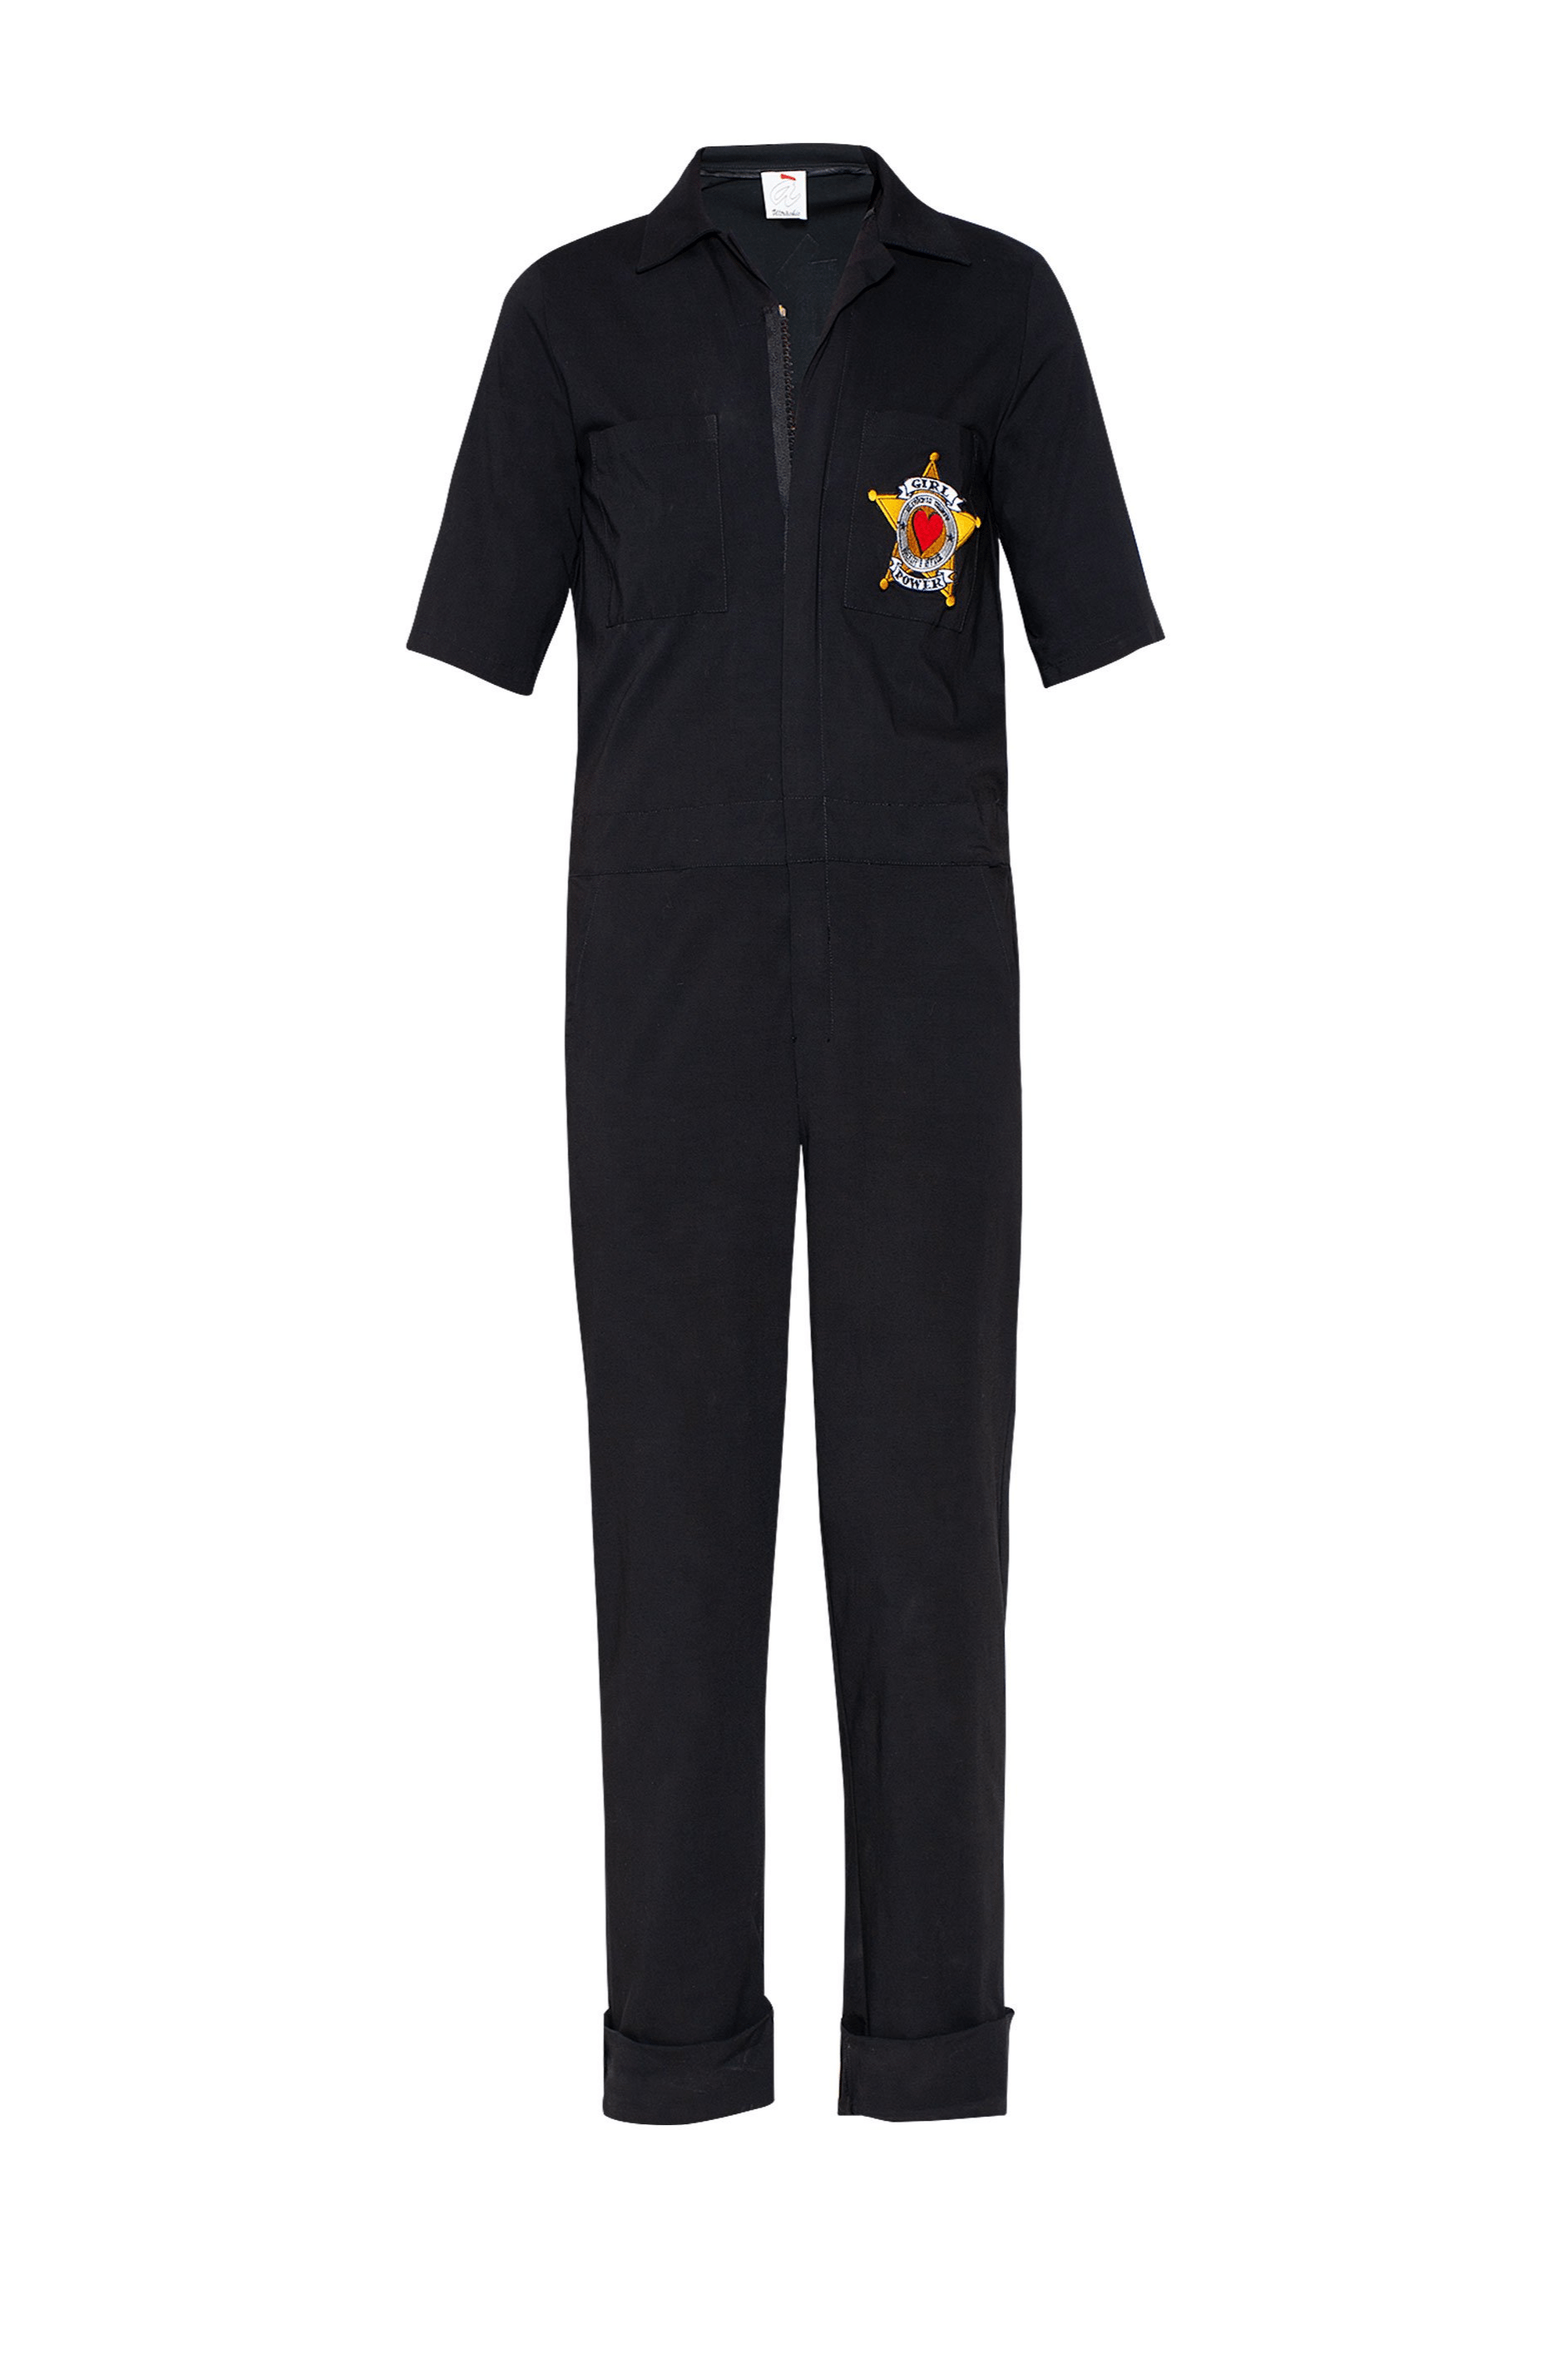 Girl Power Patch Cotton Jumpsuit - The Bobby Boga